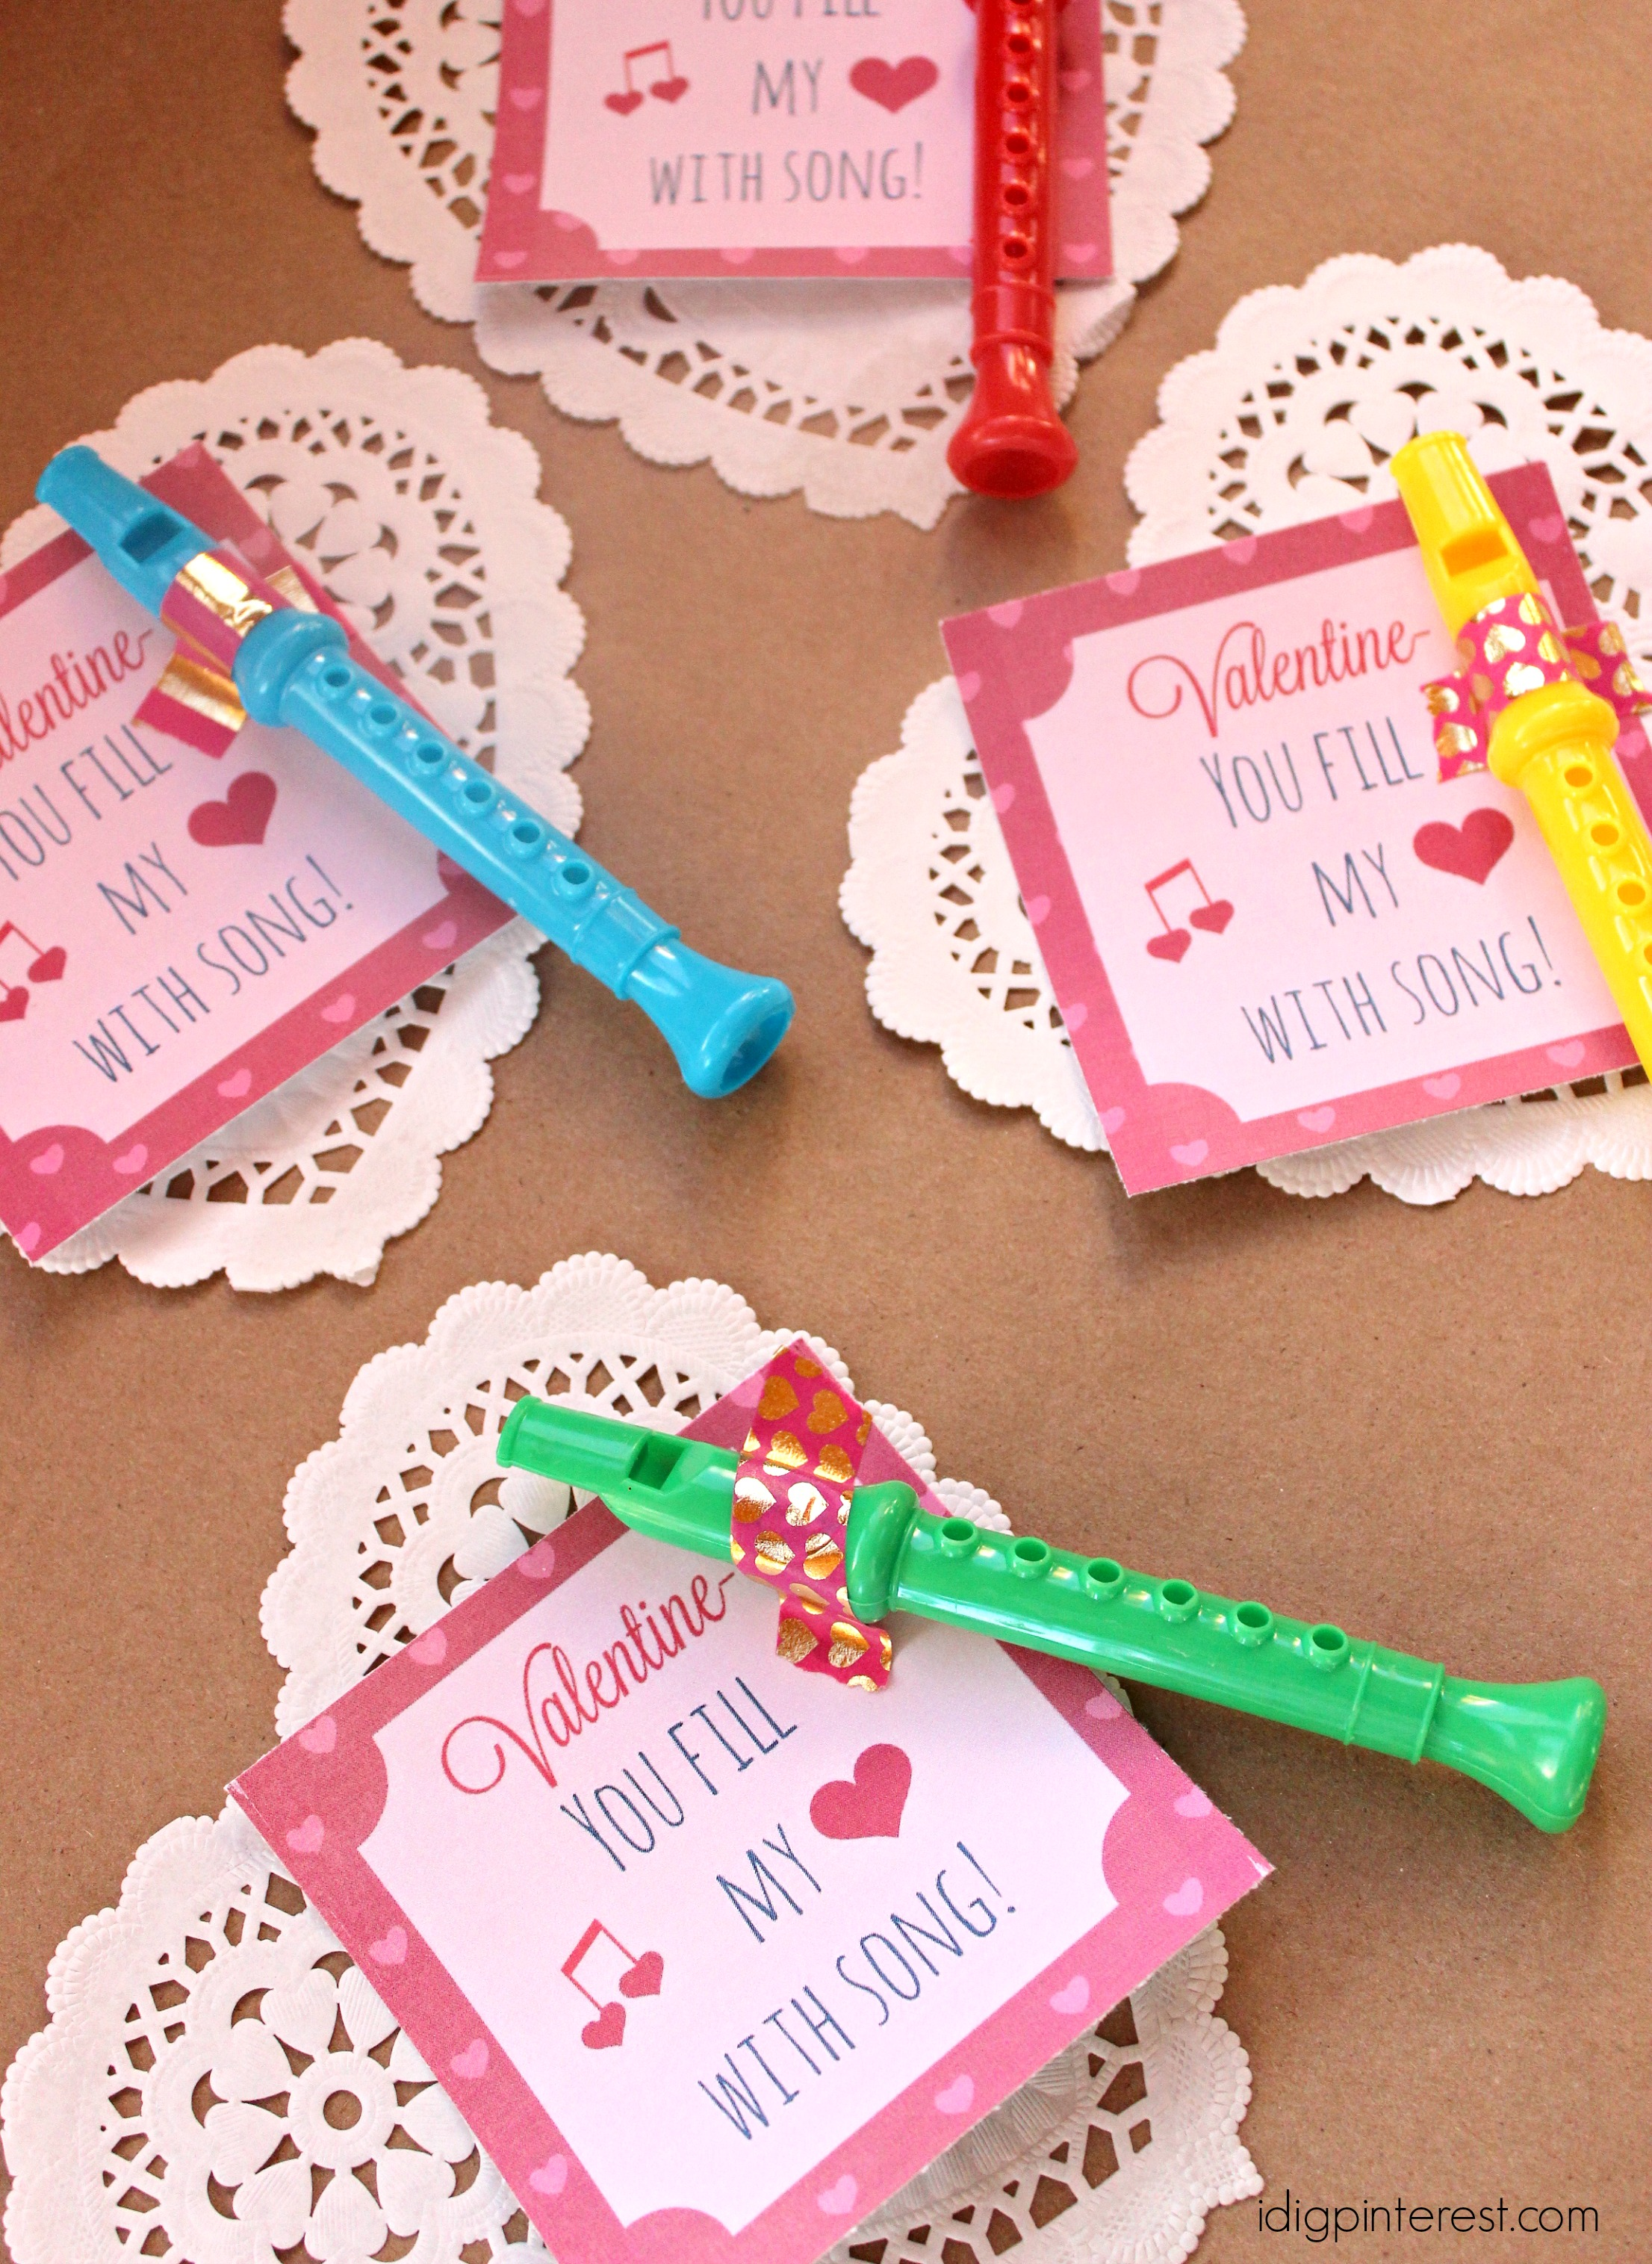 You Fill My Heart with Song Valentine Idea with Free Printable - I ...